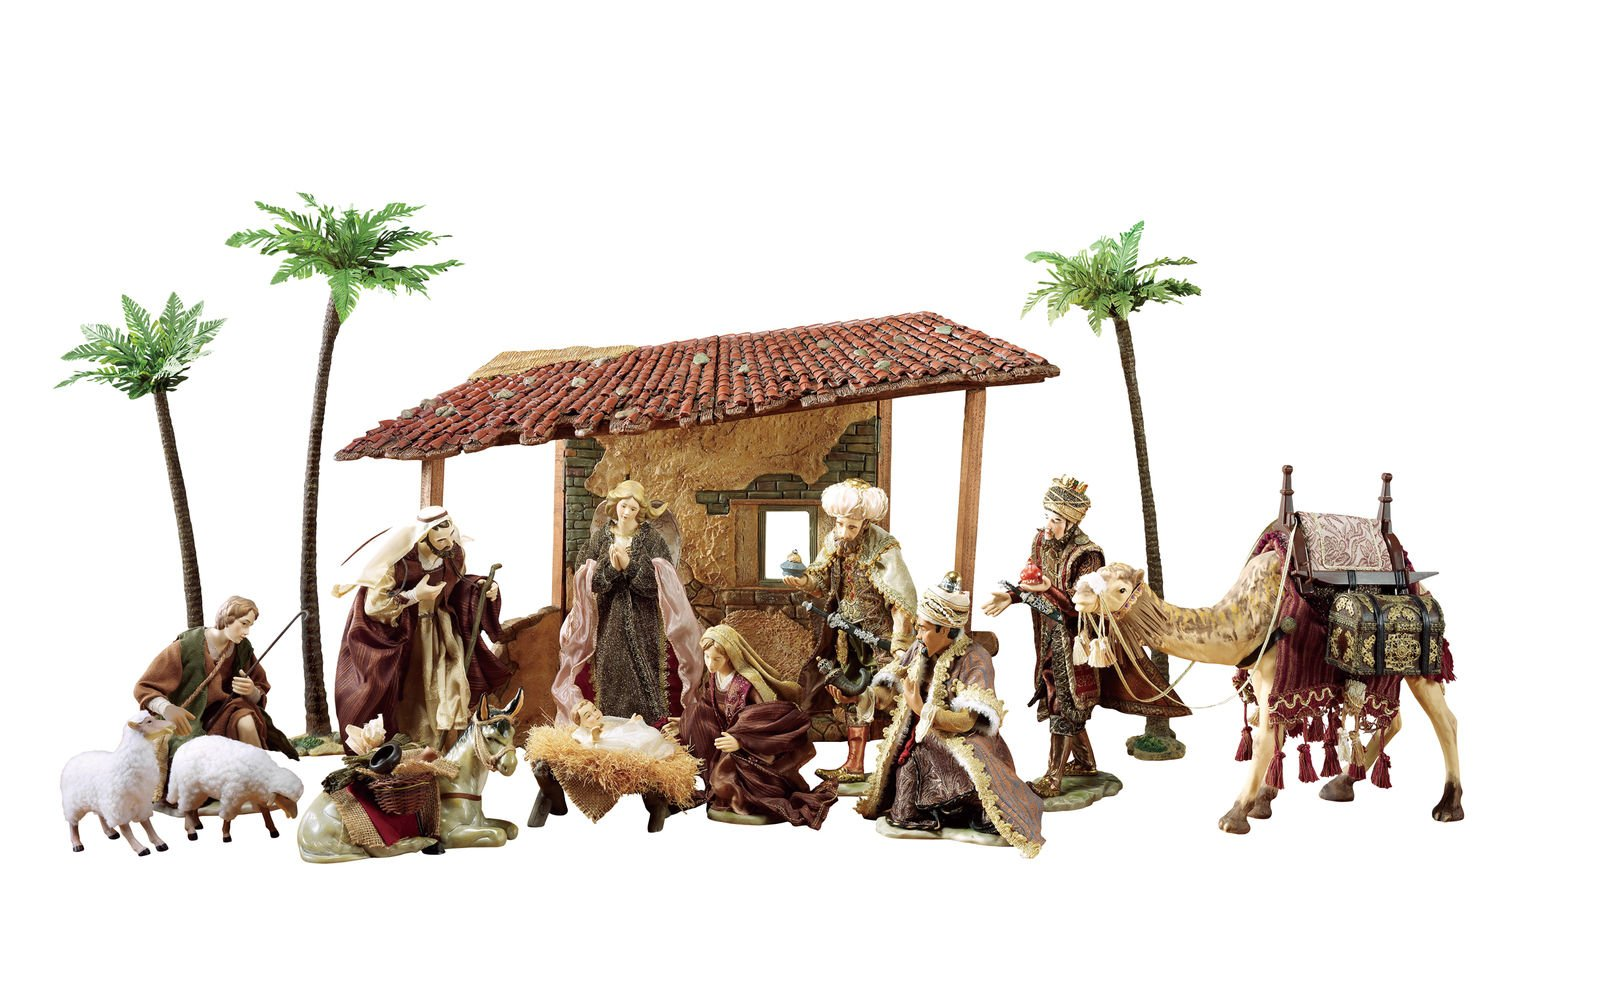 16 piece Deluxe Exquisitely Hand-Crafted and Painted Fine Porcelain Nativity Set